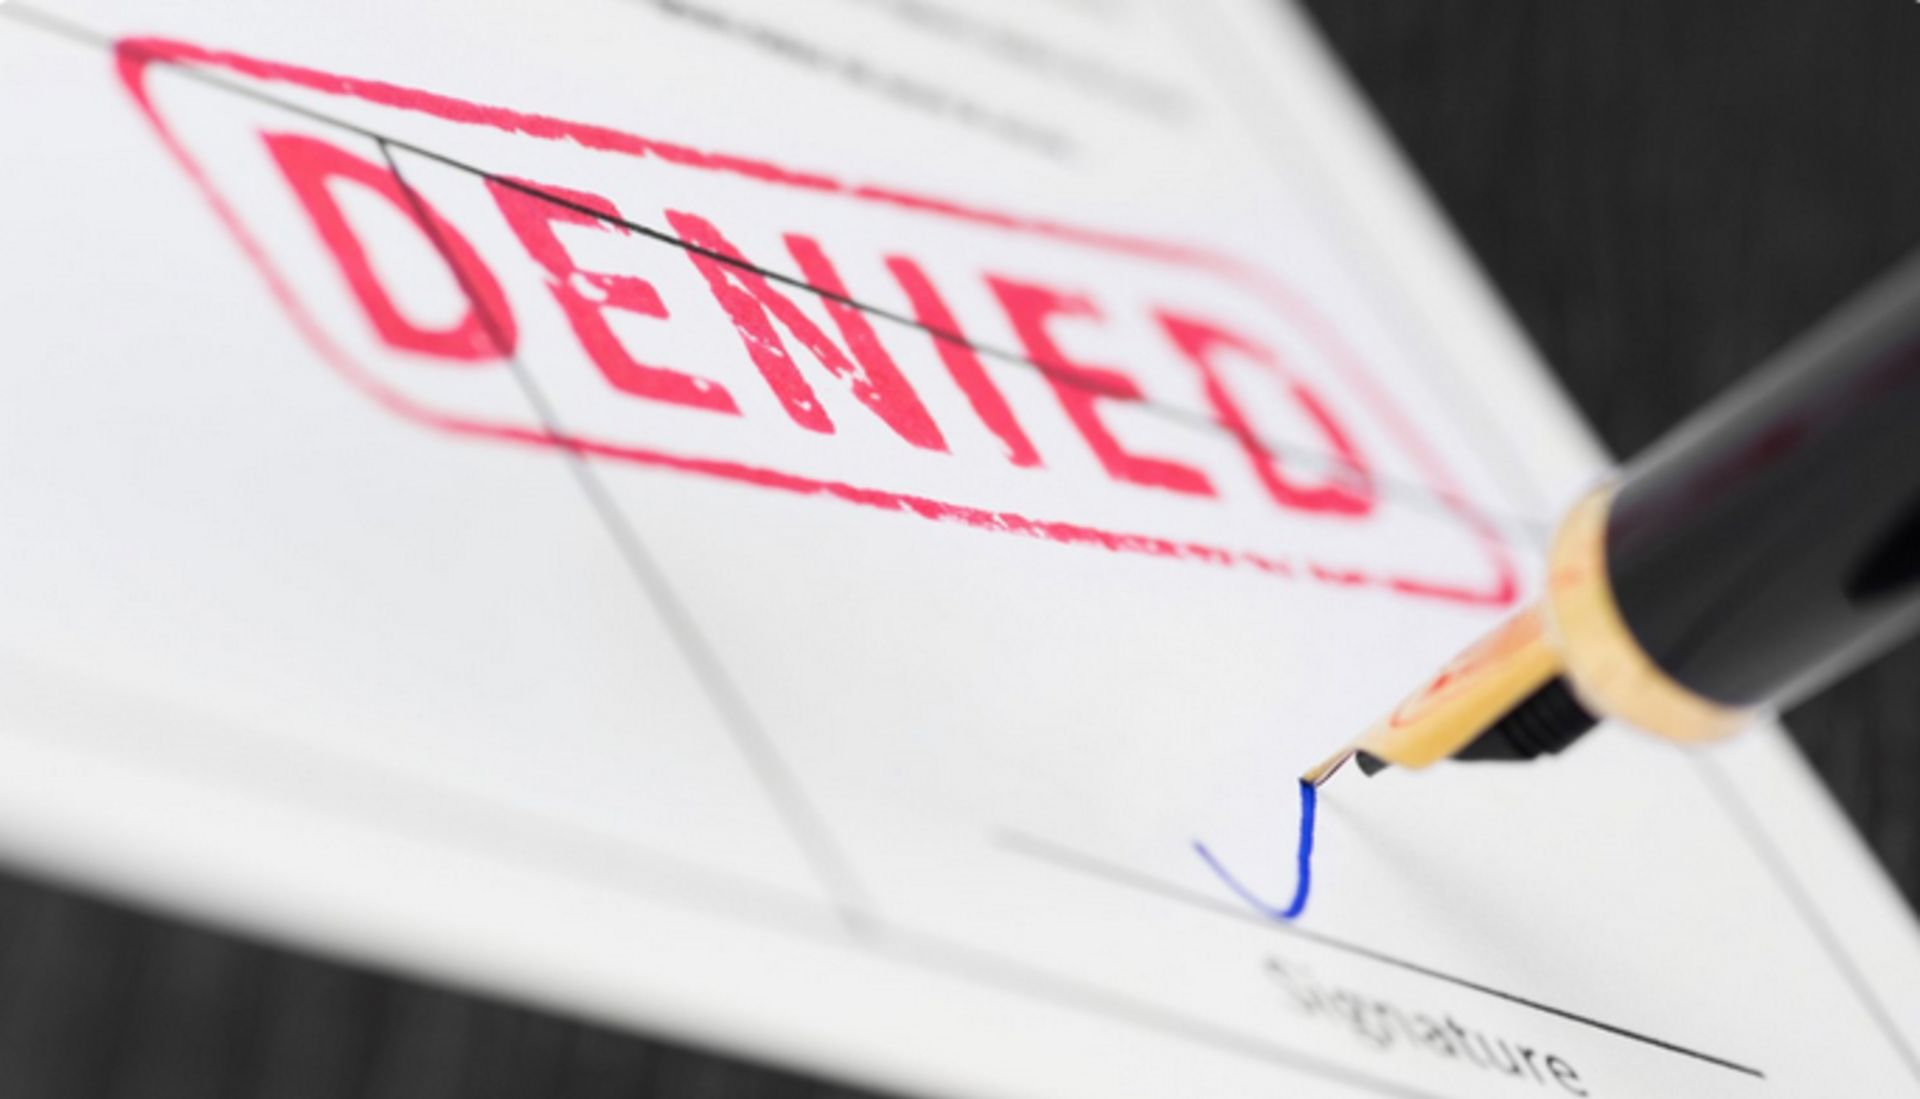 My mortgage application was turned down. Now what?